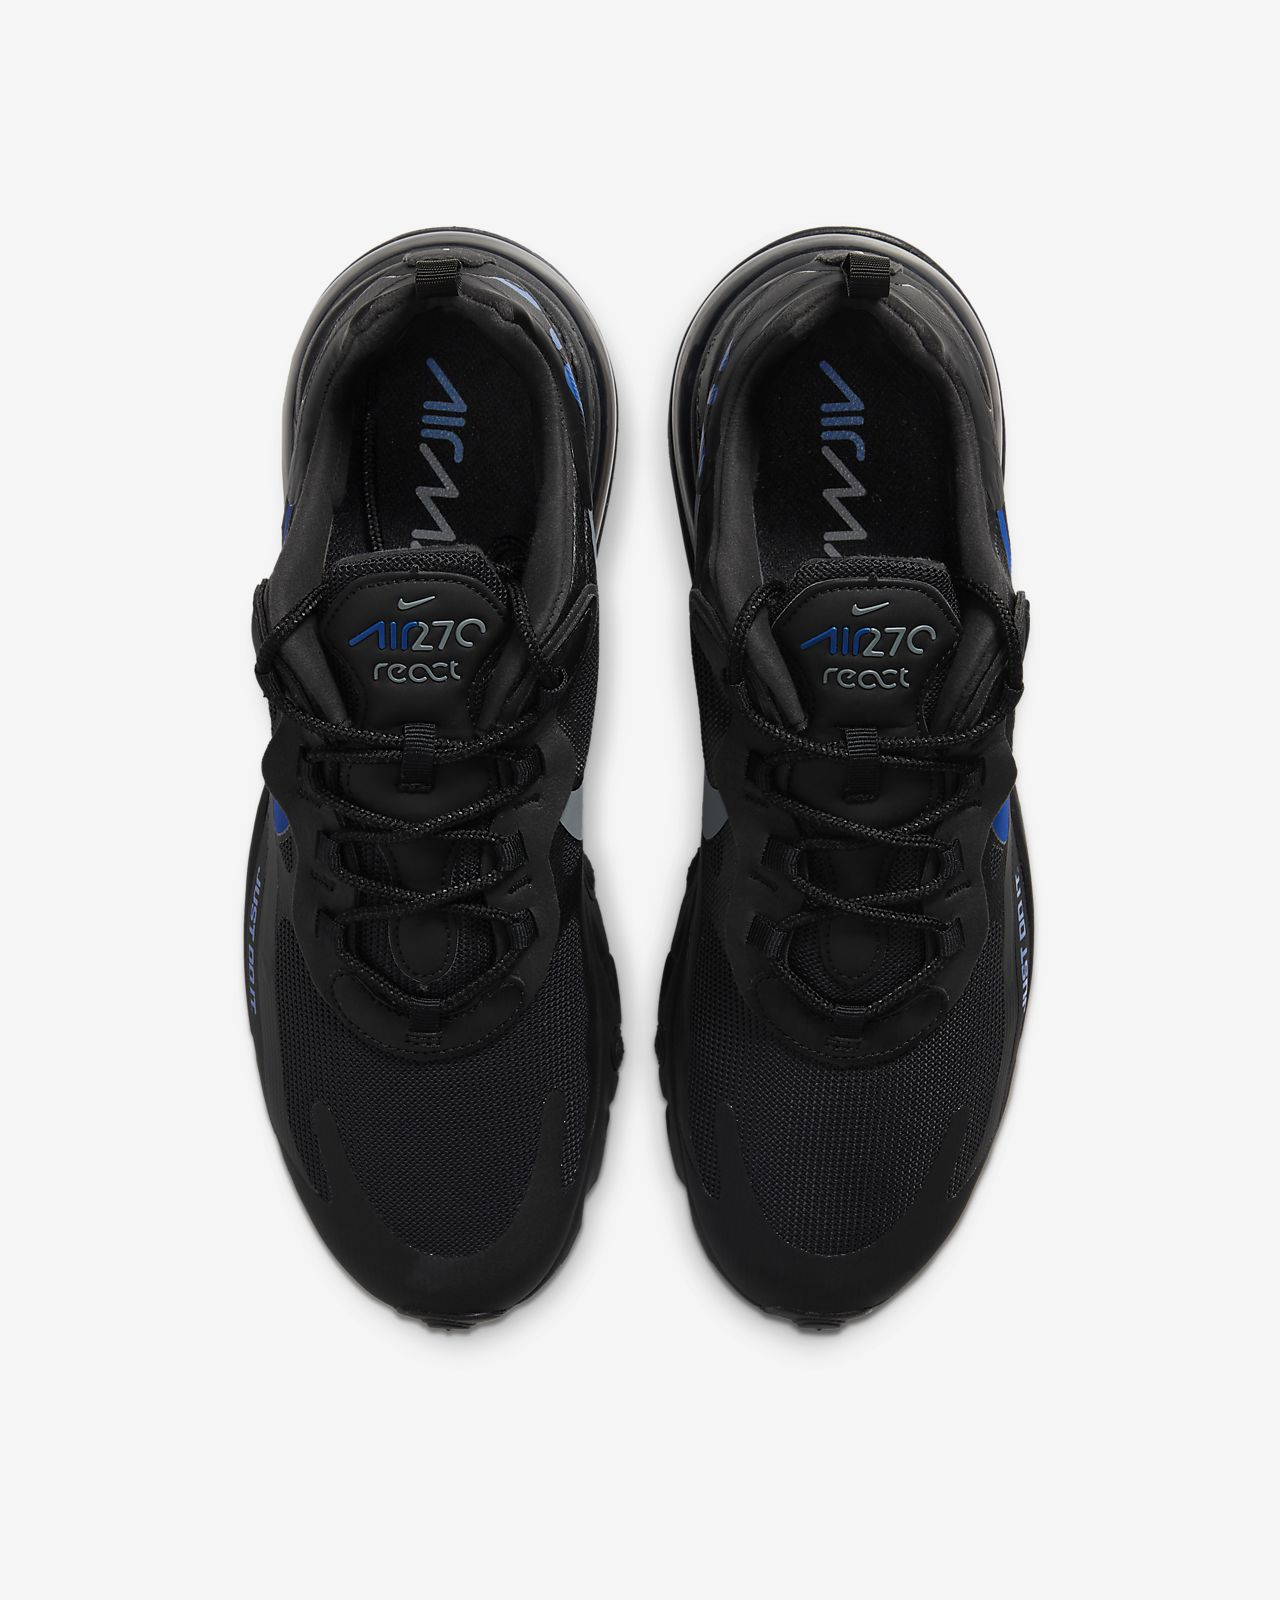 Nike Air Max 270 React Just Do It CT2203 001 Release Info